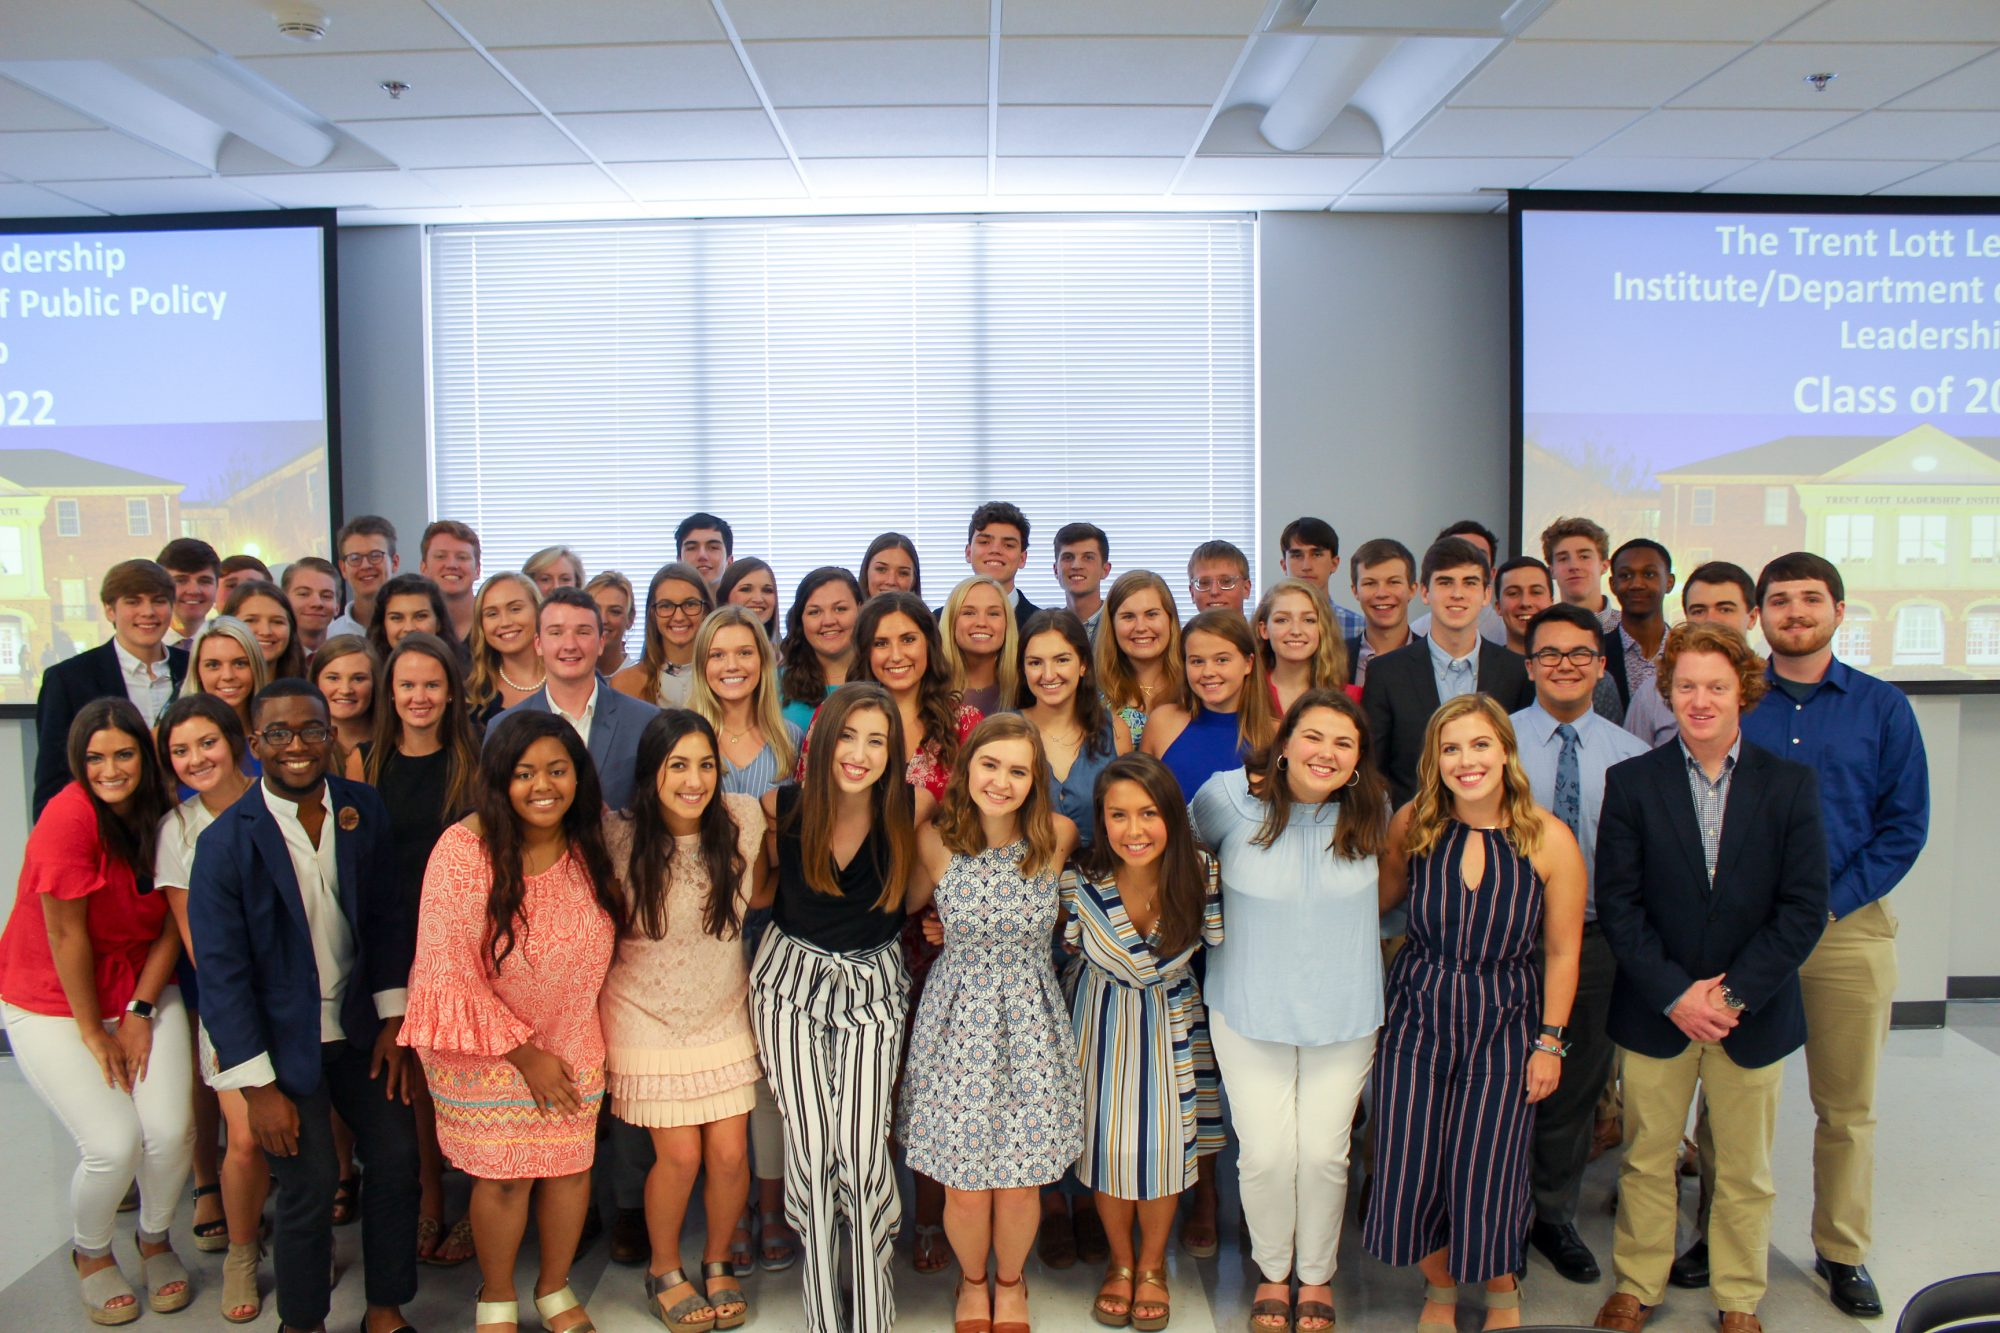 Public Policy Leadership Class of 2022